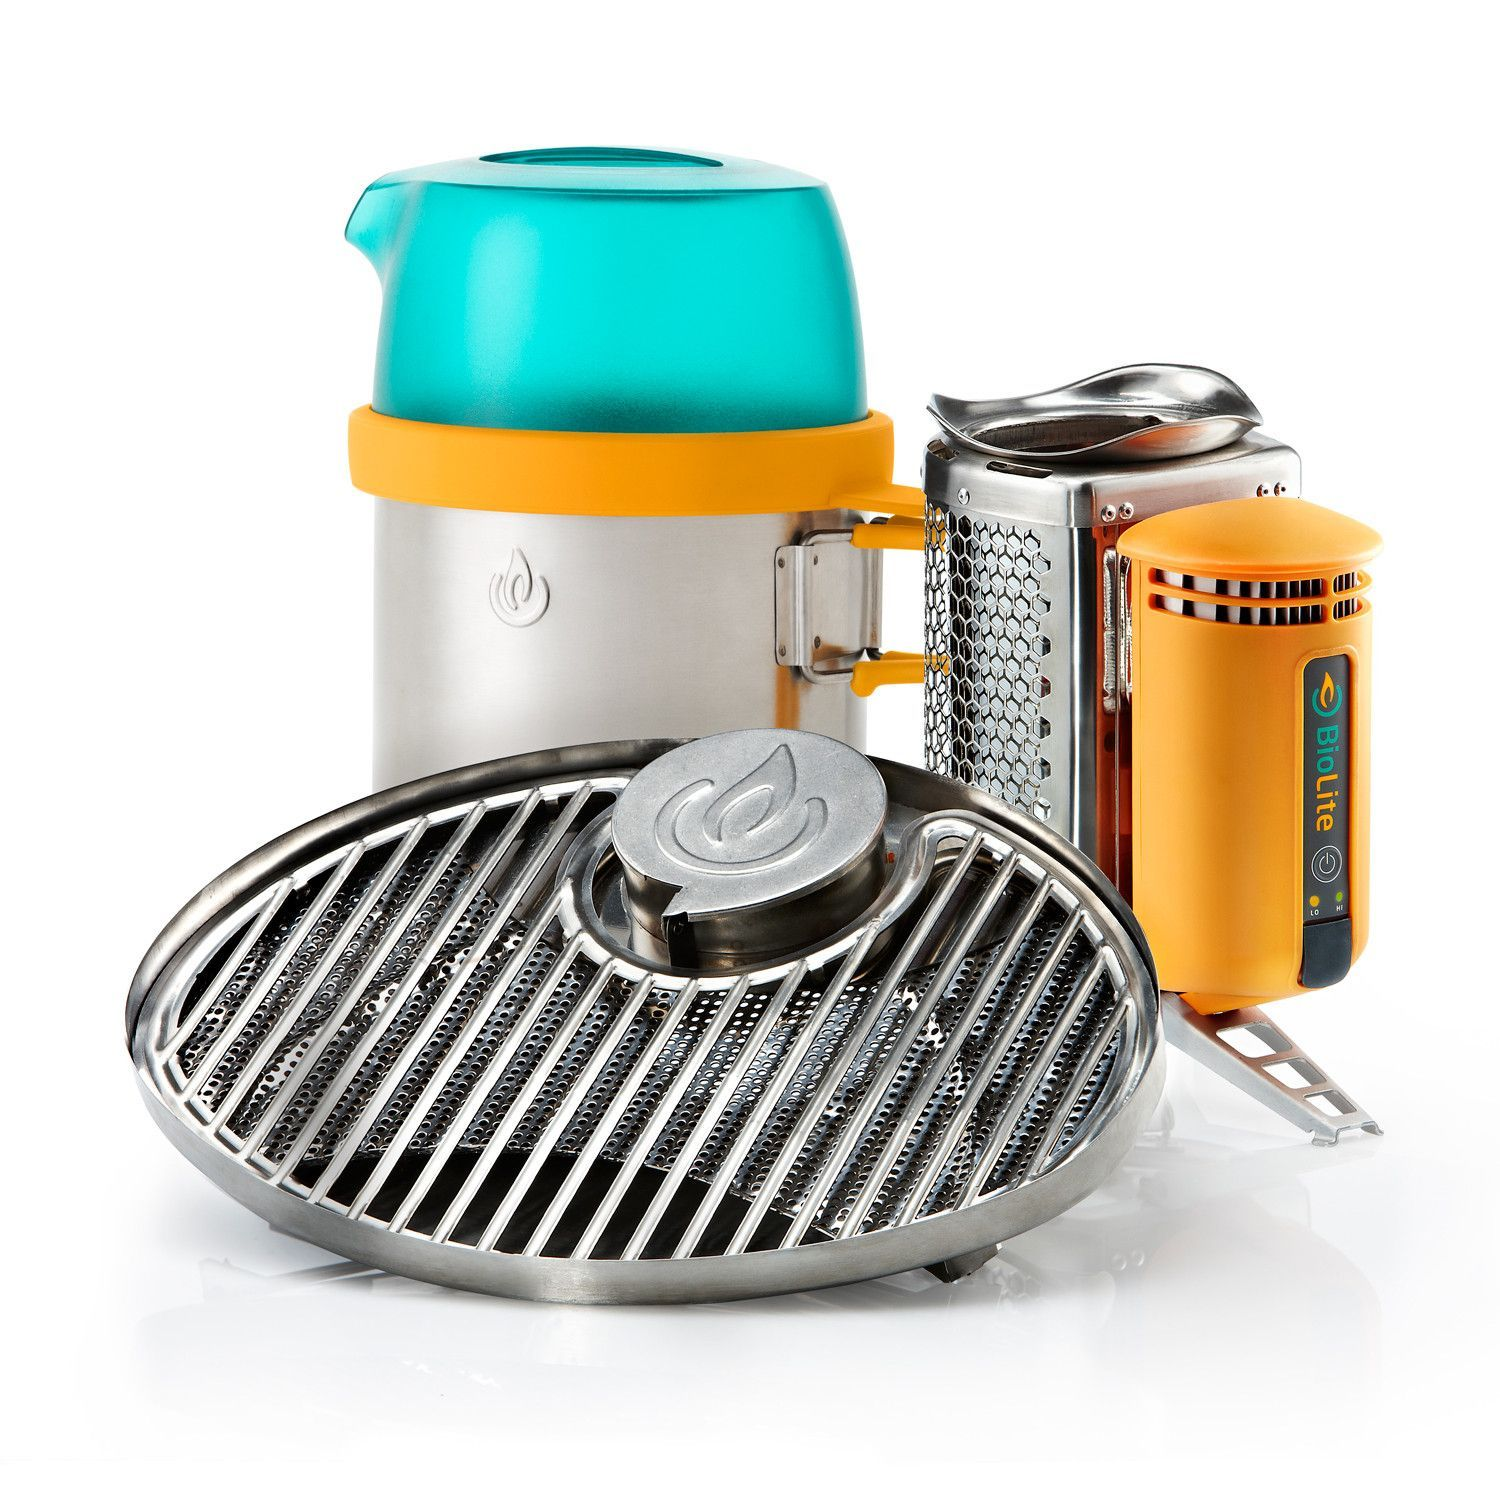 BioLite Portable Grill | Grill your meals with wood ...